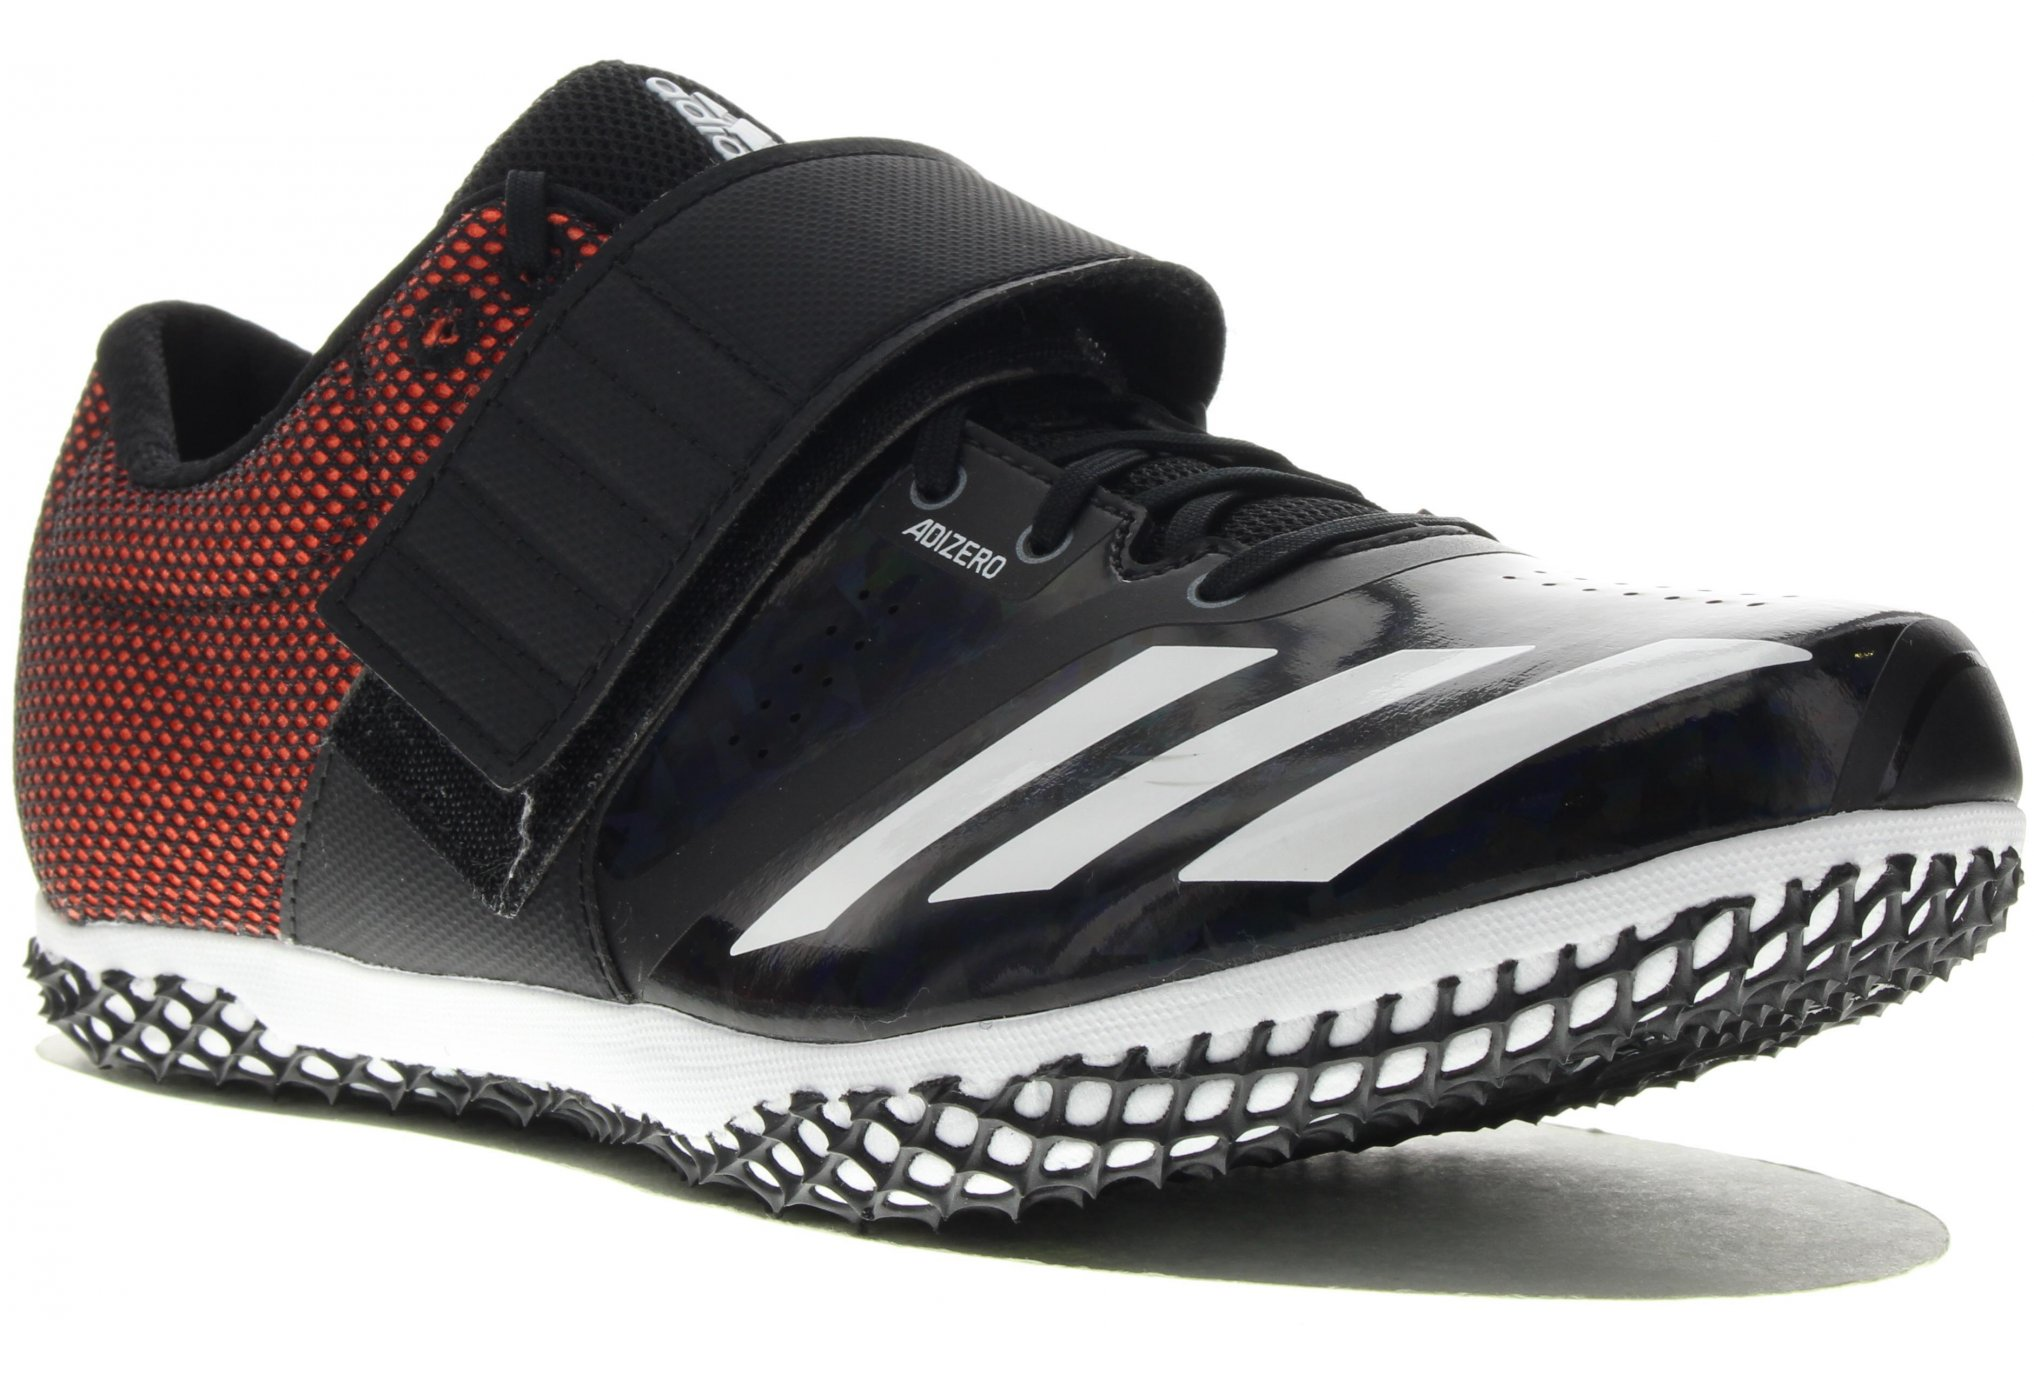 Adidas Adizero hj m chaussures homme